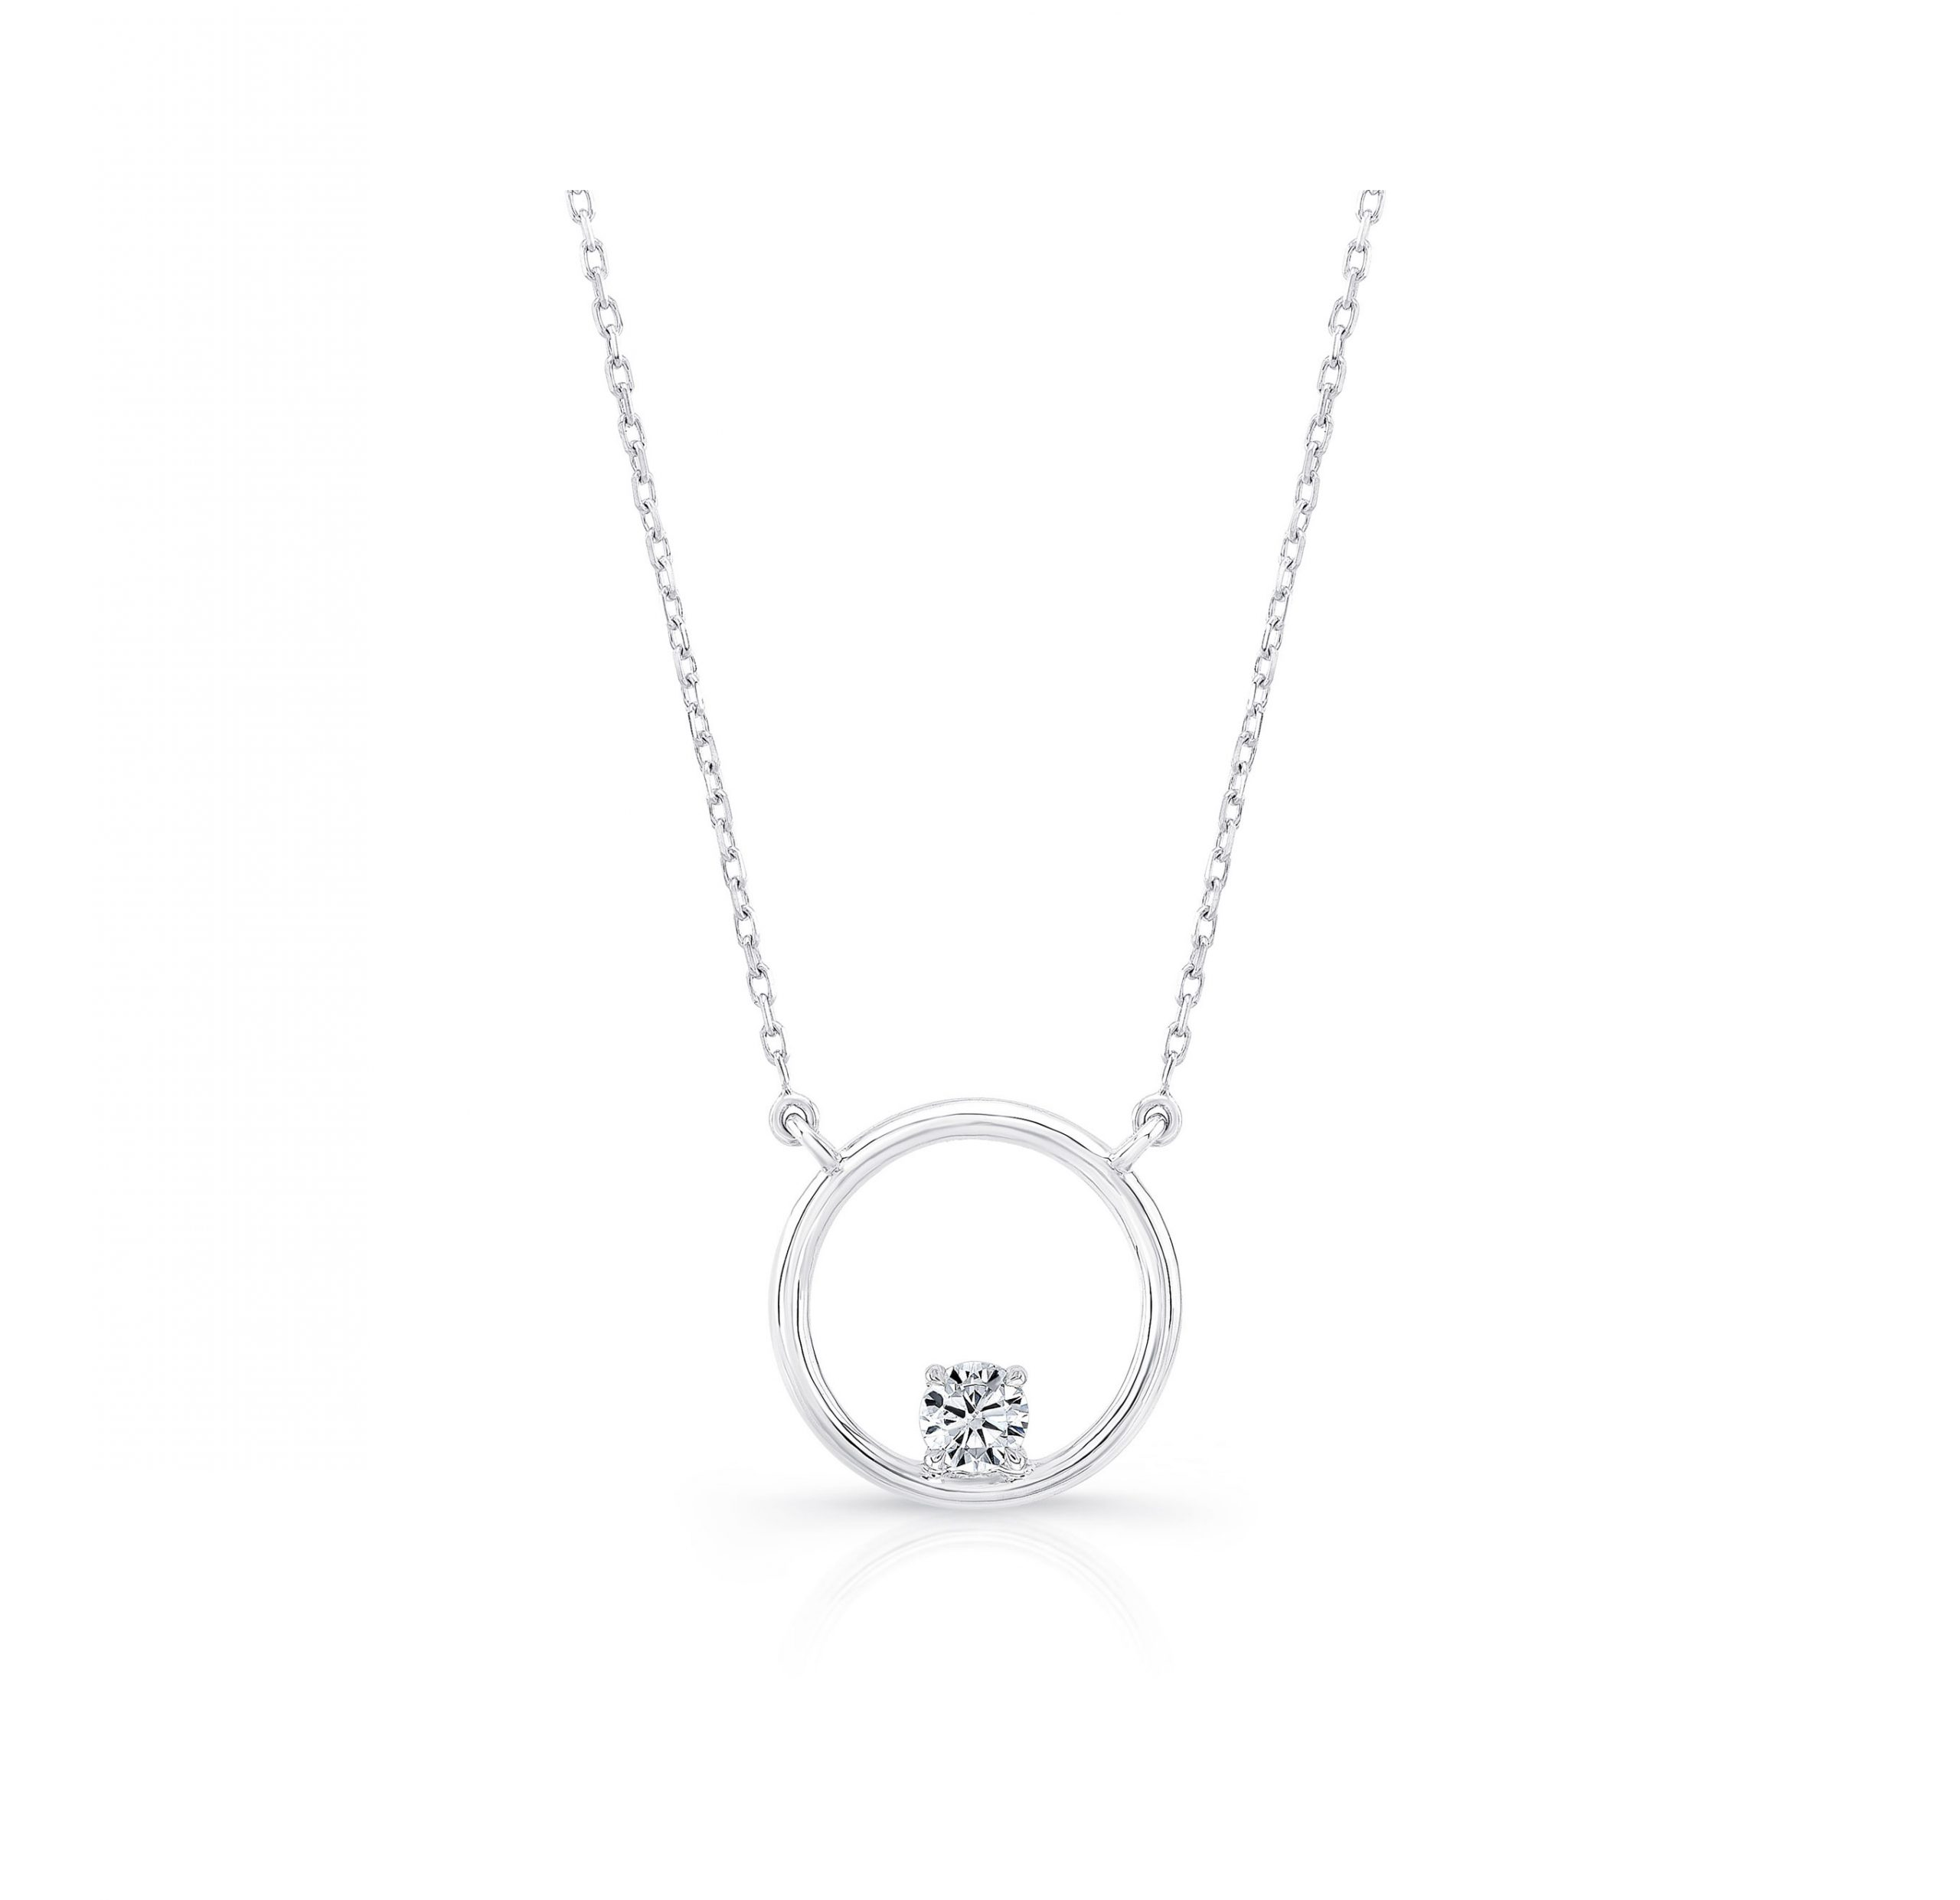 Colette Circle Diamond Necklace, round brilliant in 18k White Gold Front View by Oui by Jean Dousset